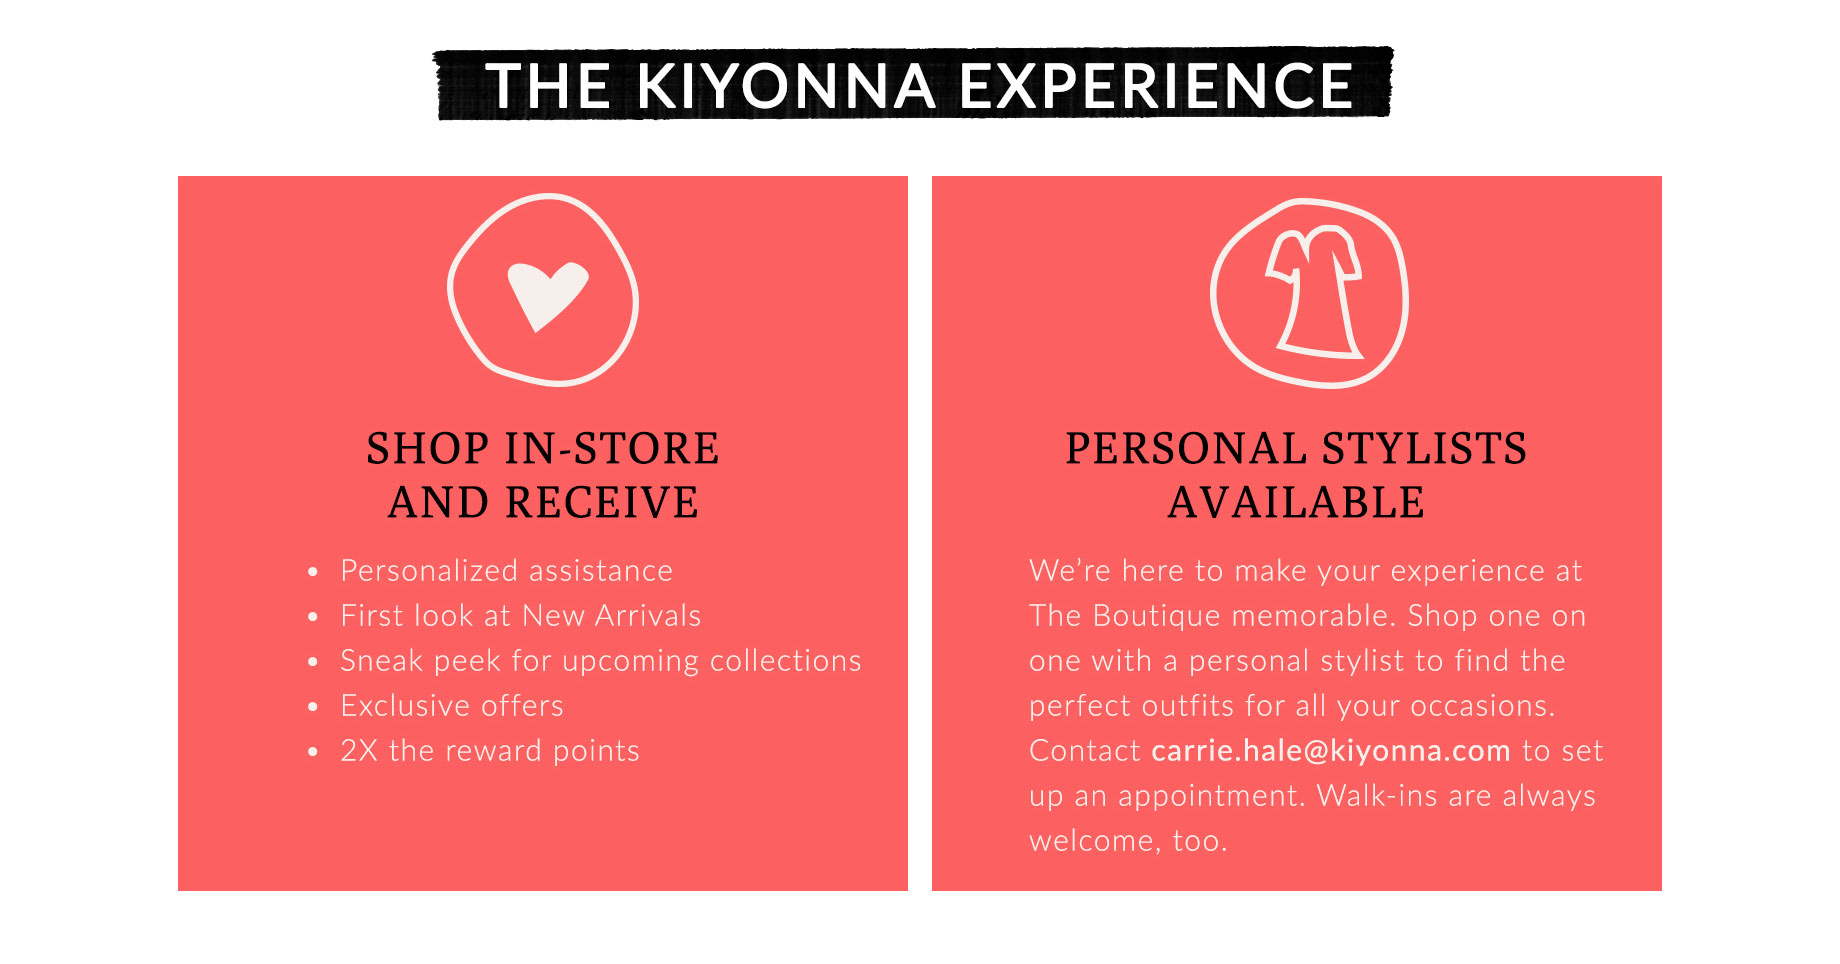 The Kiyonna Experience